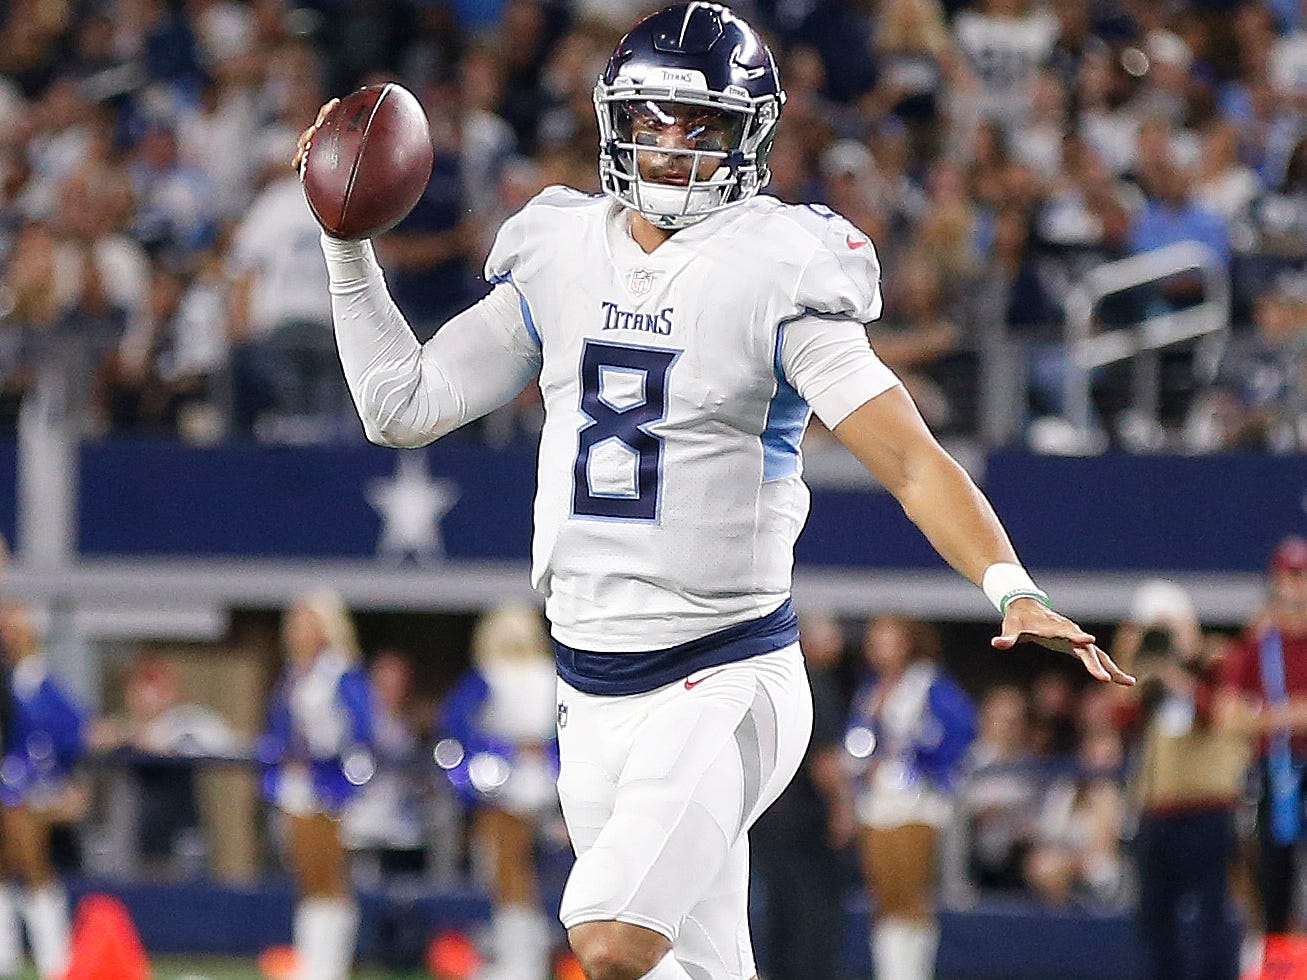 Tennessee Titans quarterback Marcus Mariota (8) runs out of the pocket against the Dallas Cowboys during the second half of an NFL football game, Monday, Nov. 5, 2018, in Arlington, Texas.